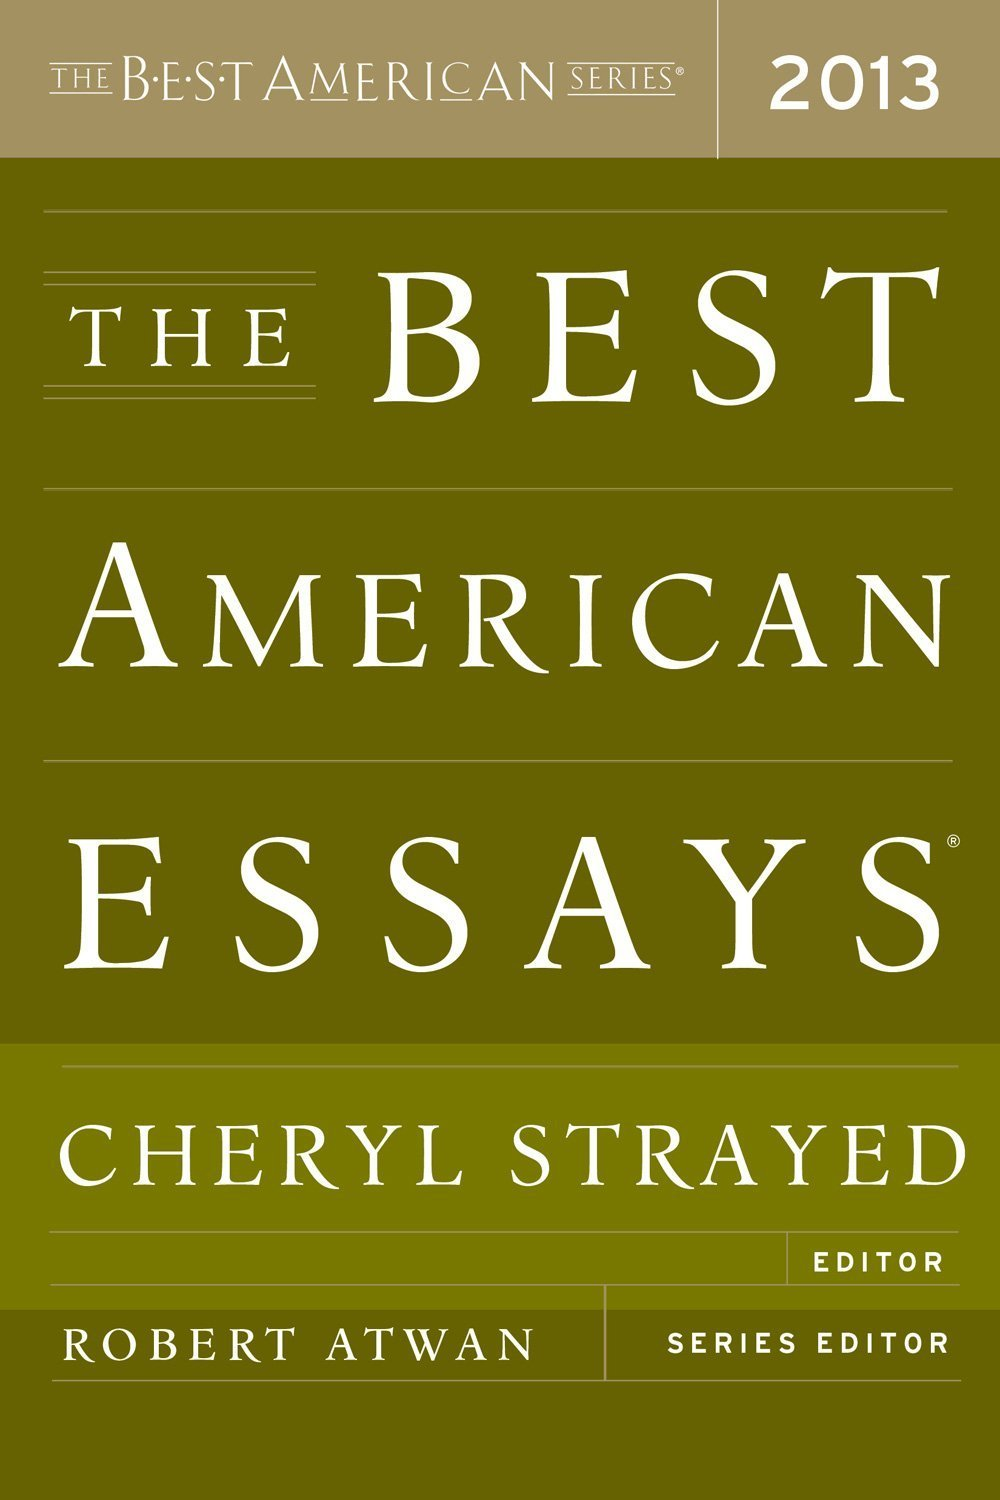 004 The Best American Essays Essay Wonderful 2018 Pdf 2017 Table Of Contents 2015 Free Full